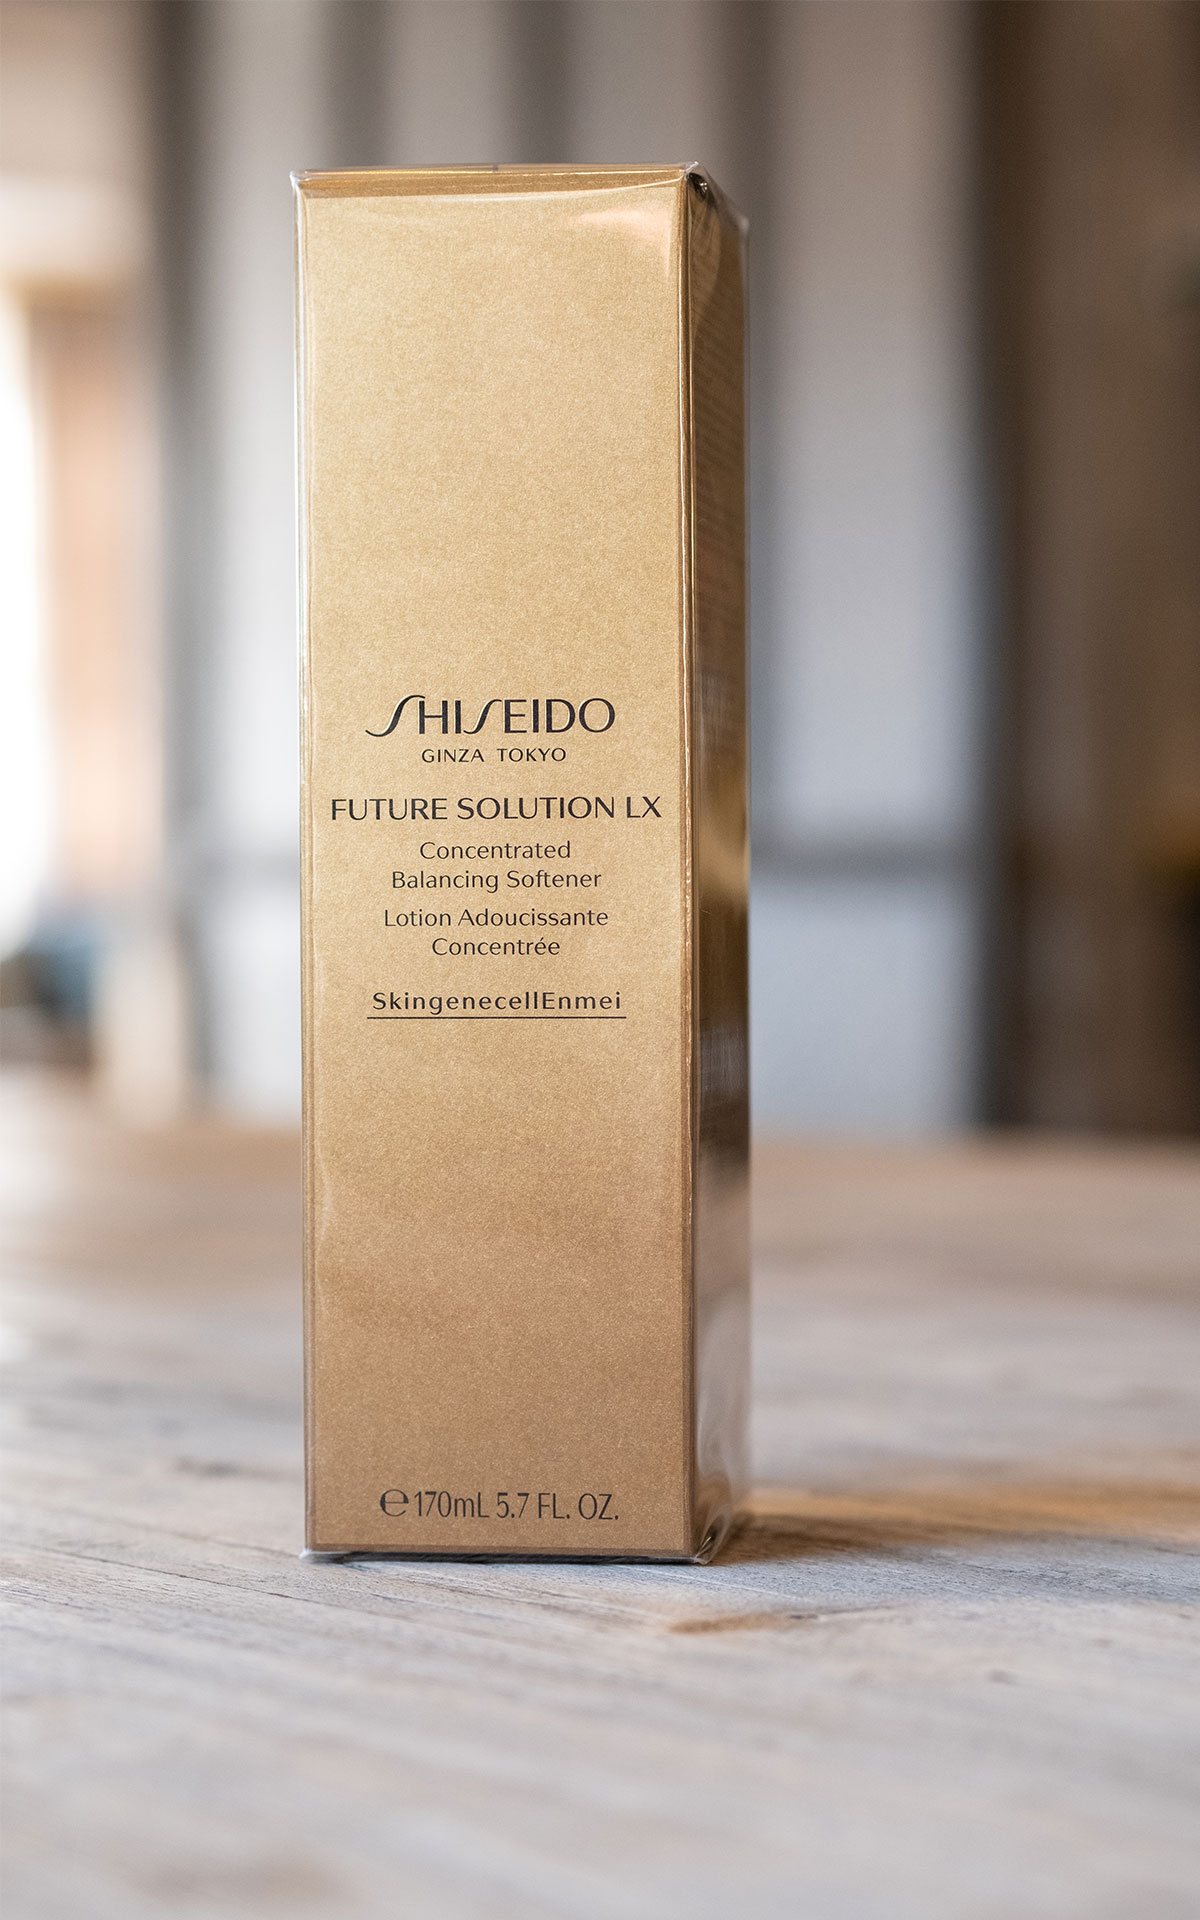 Beaute Prestige International Shiseido Future solution LX balancing softener from Bicester Village